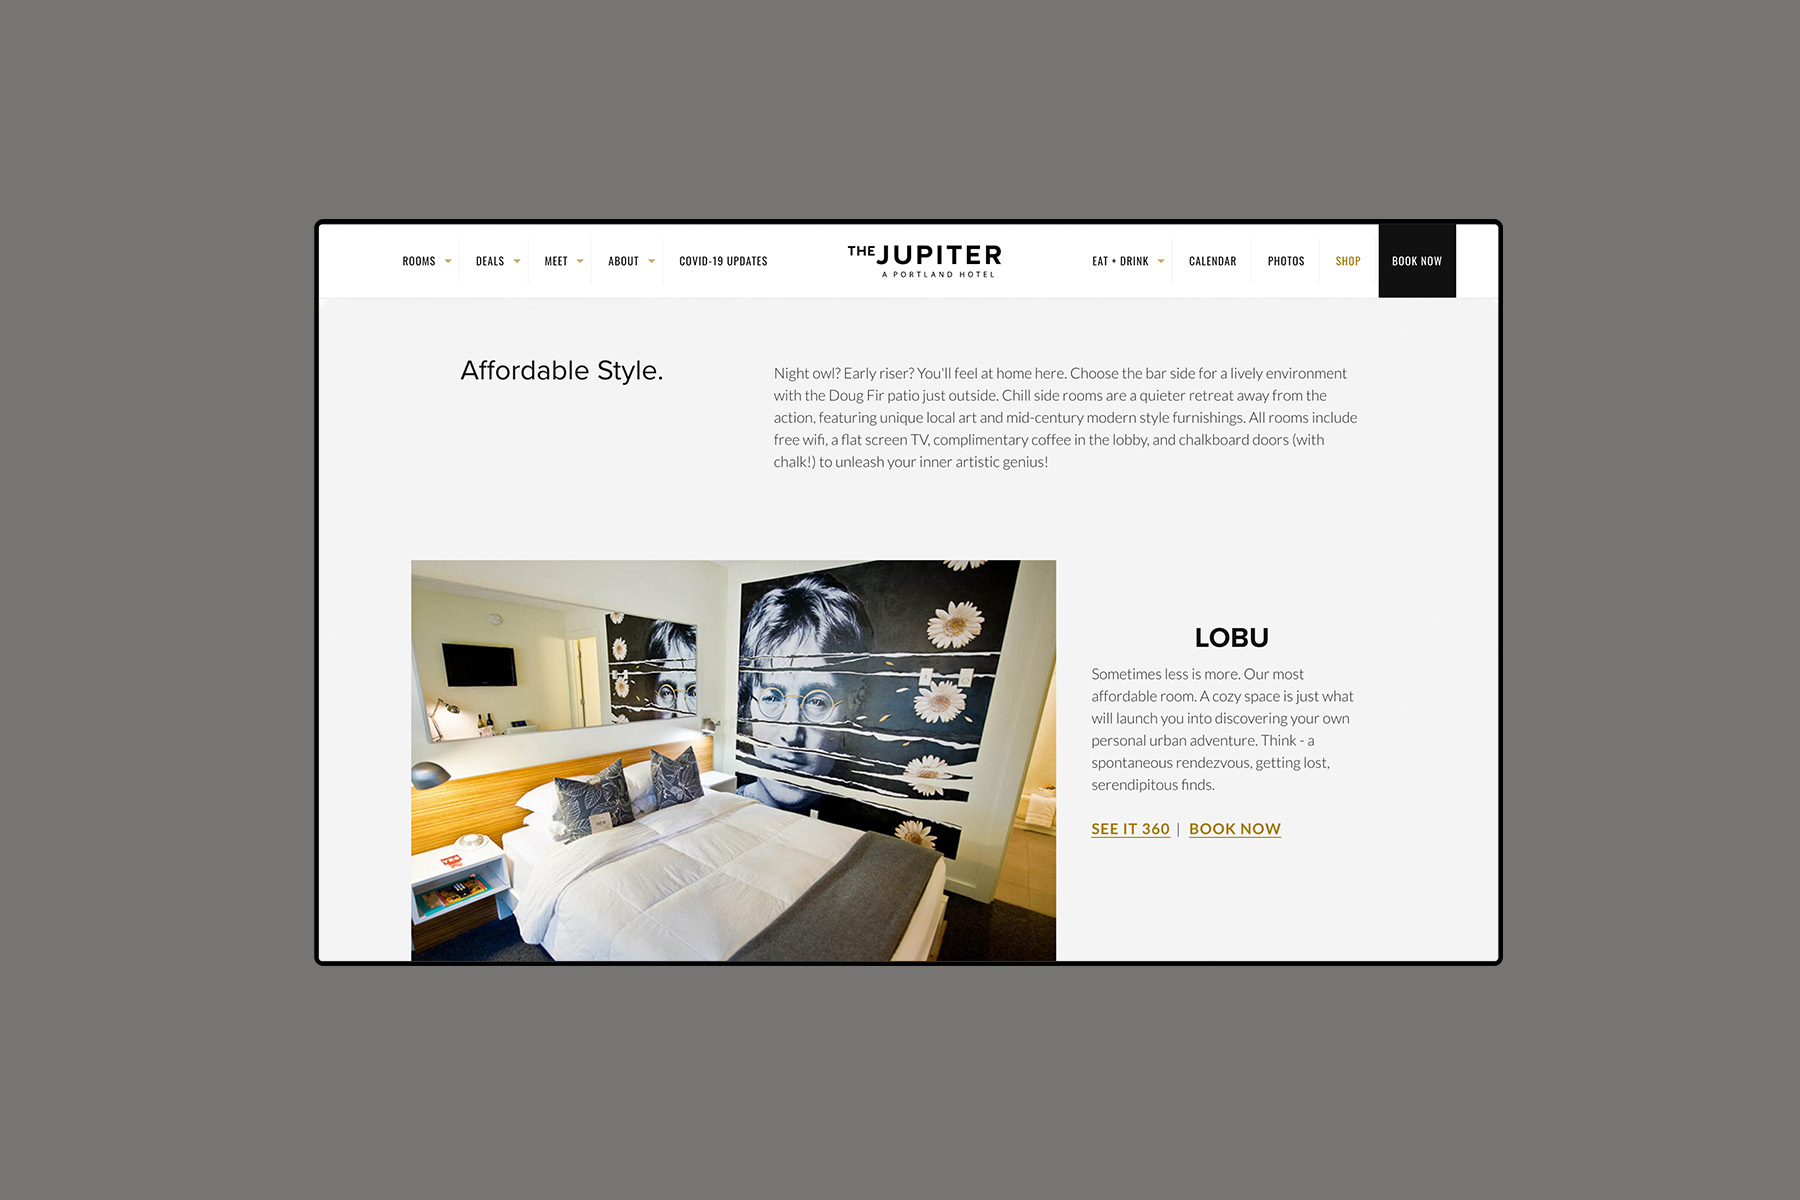 Web design for the jupiter hotel rooms page